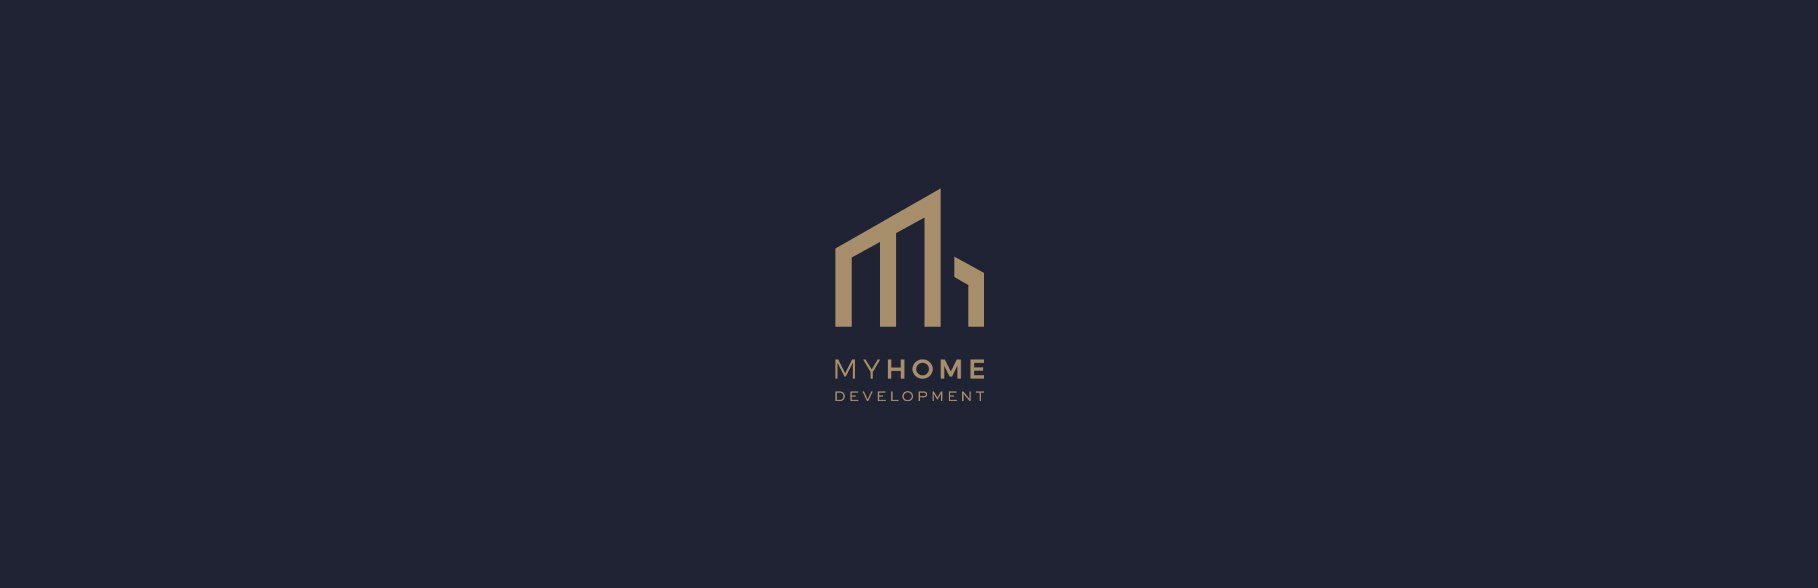 myHome Development